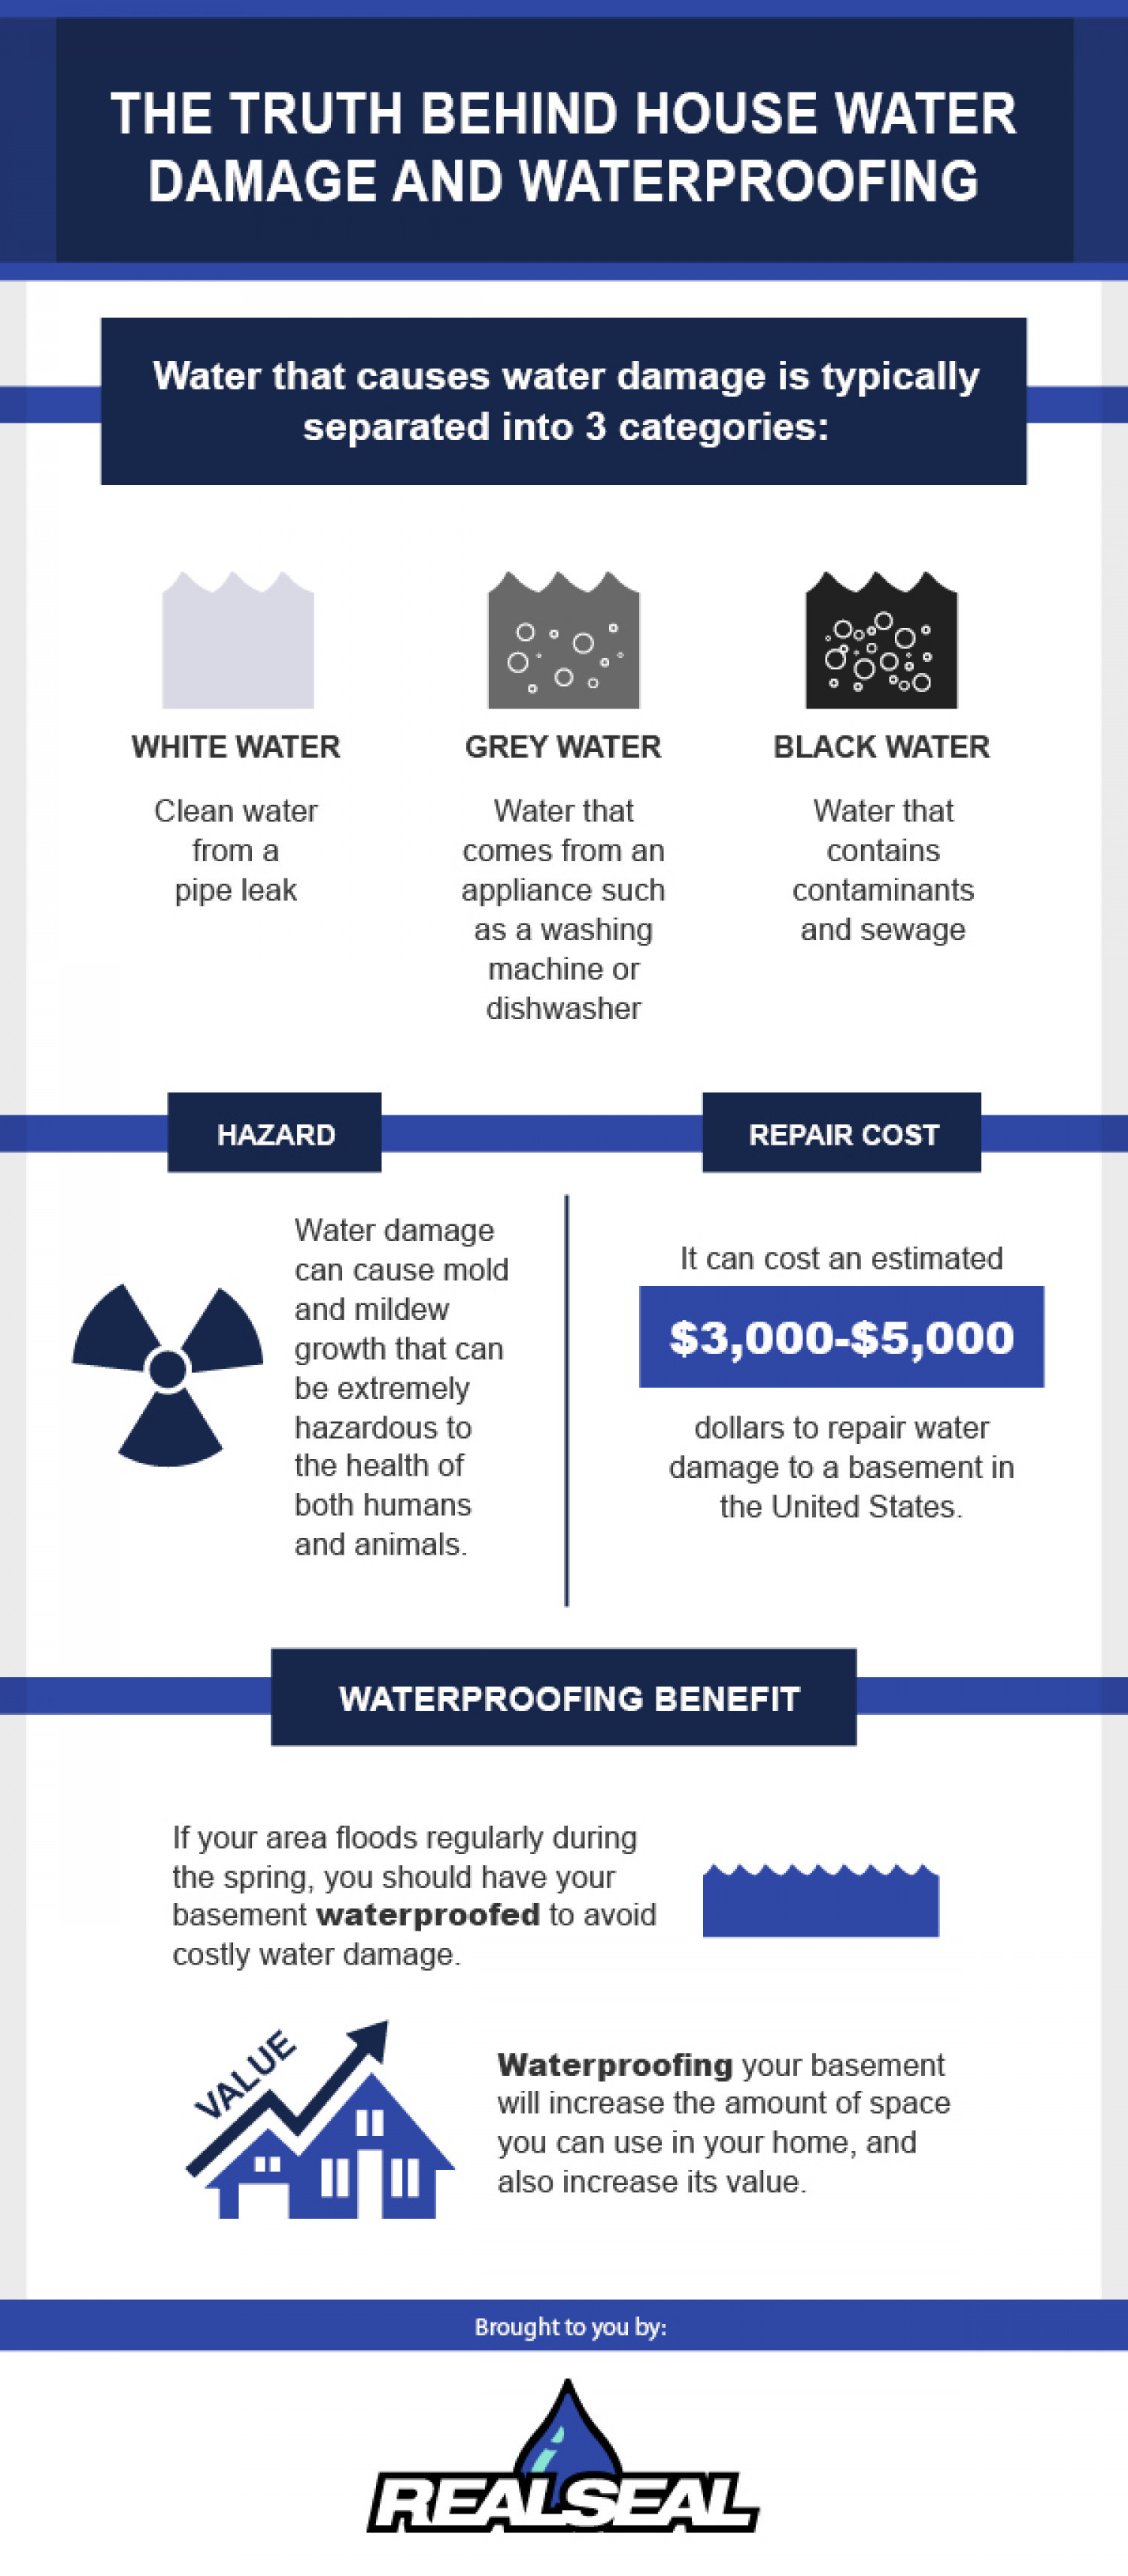 The Truth Behind House Water Damage And Waterproofing Infographic